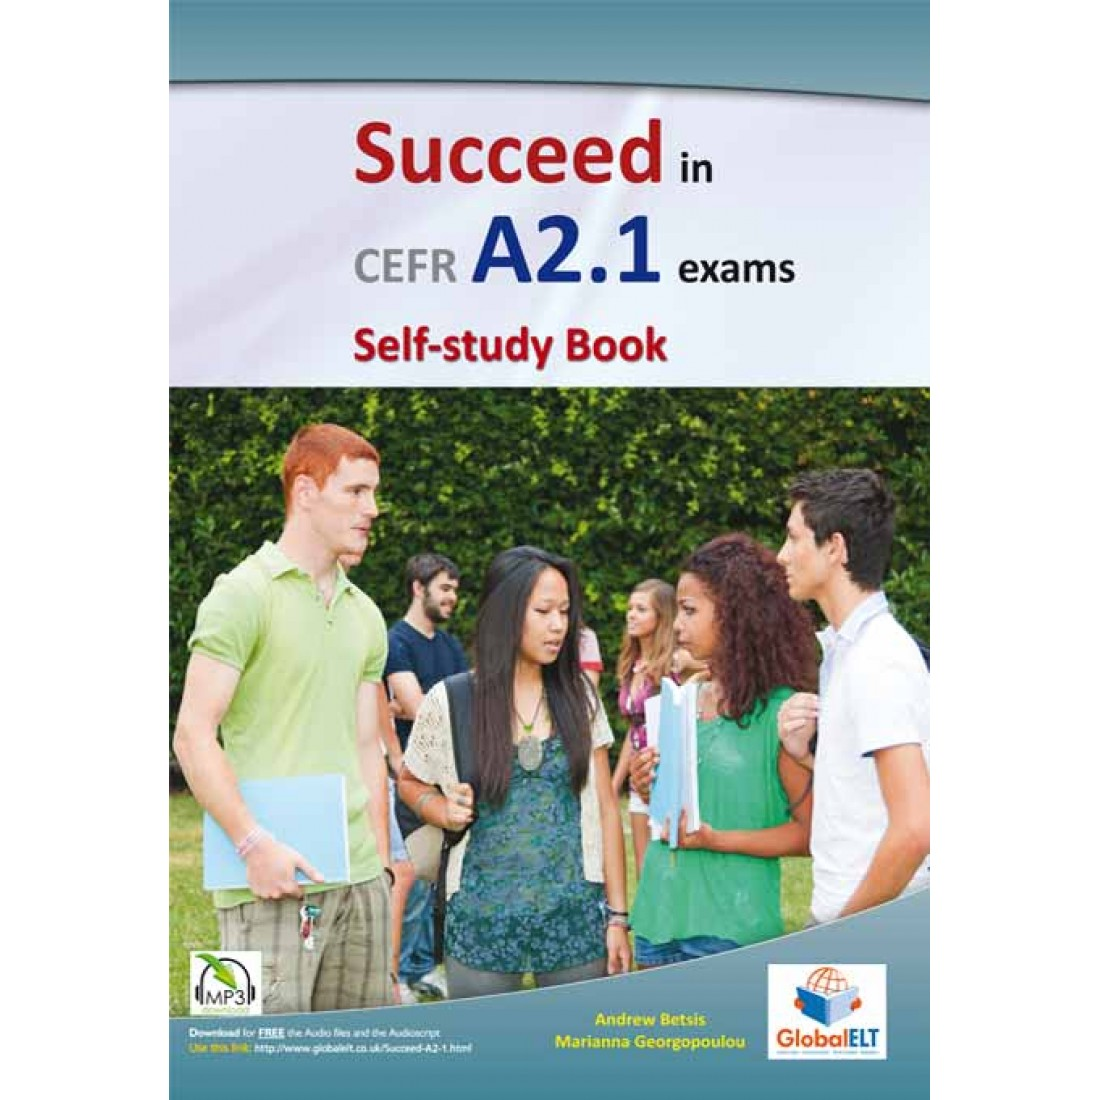 Succeed in CEFR Level A2 1 Exams - Self-study book